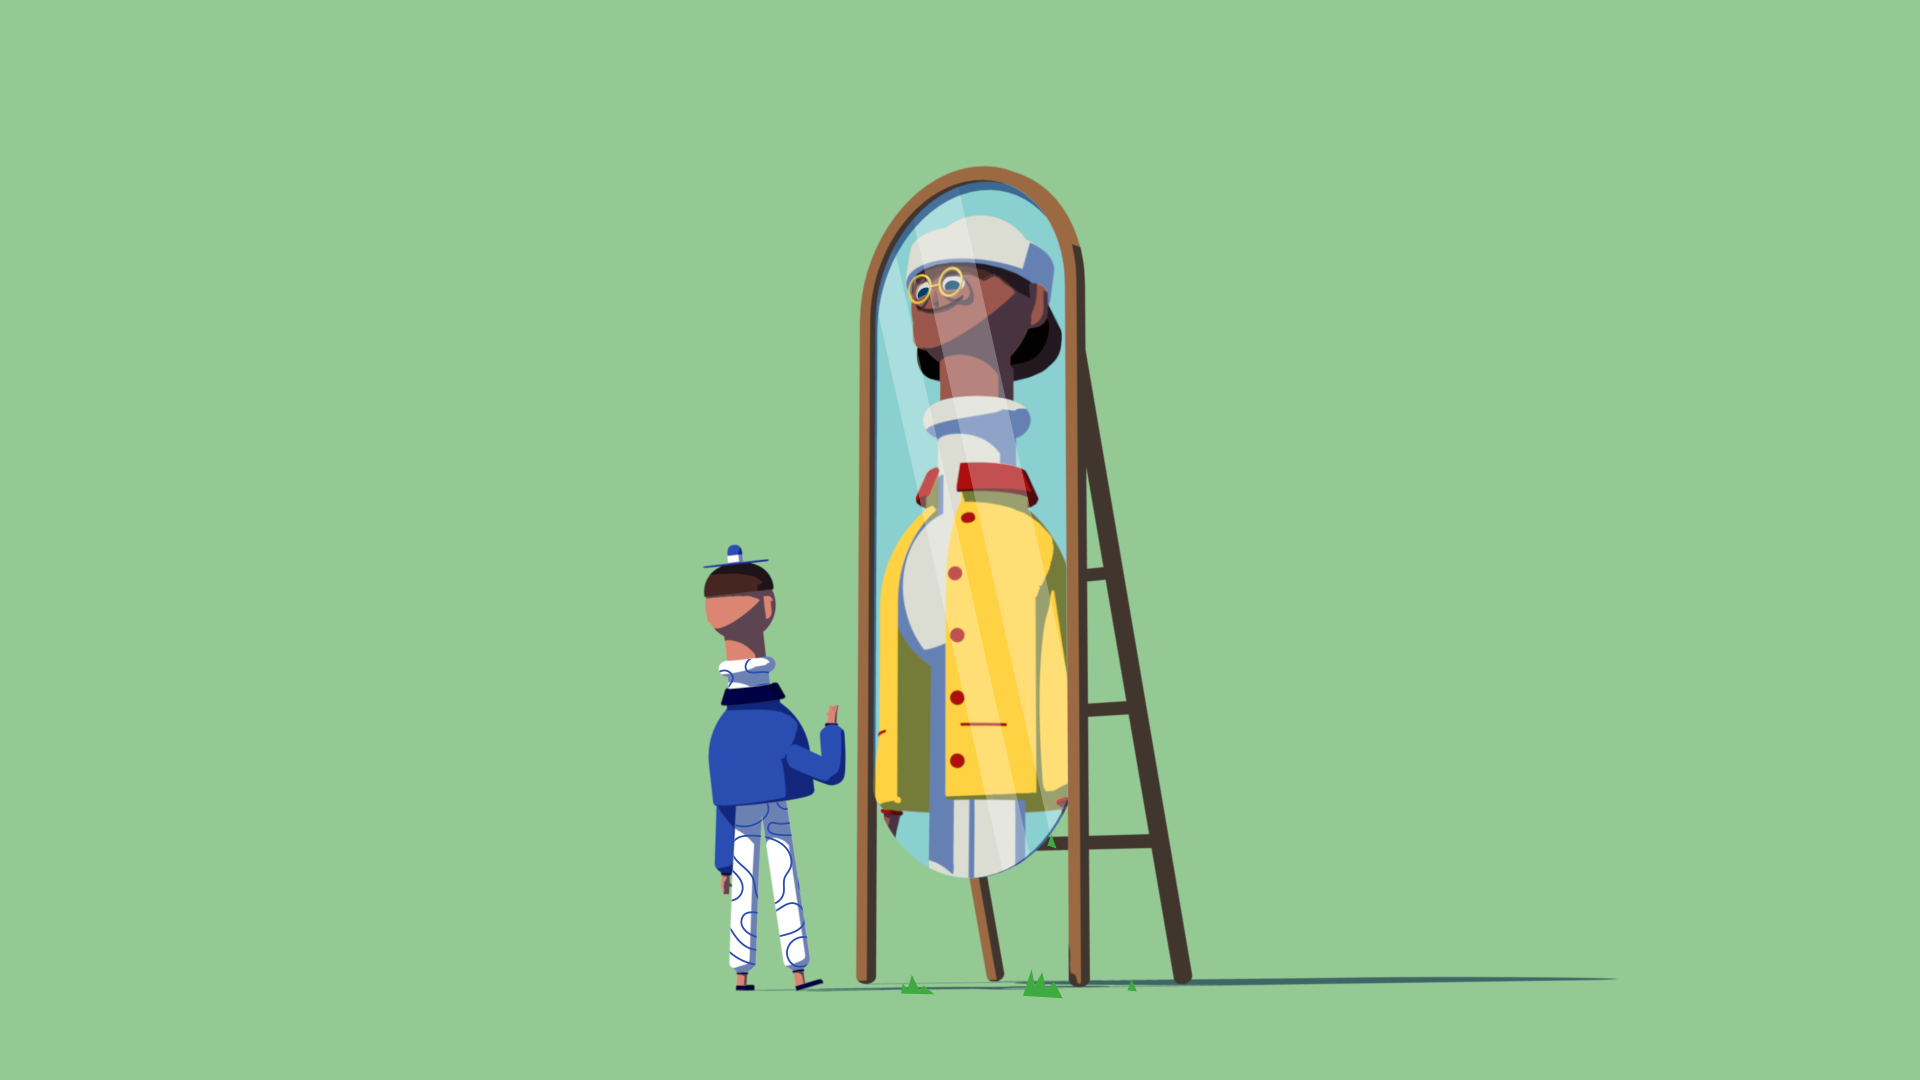 MIRROR_LADY+Dude-2.png